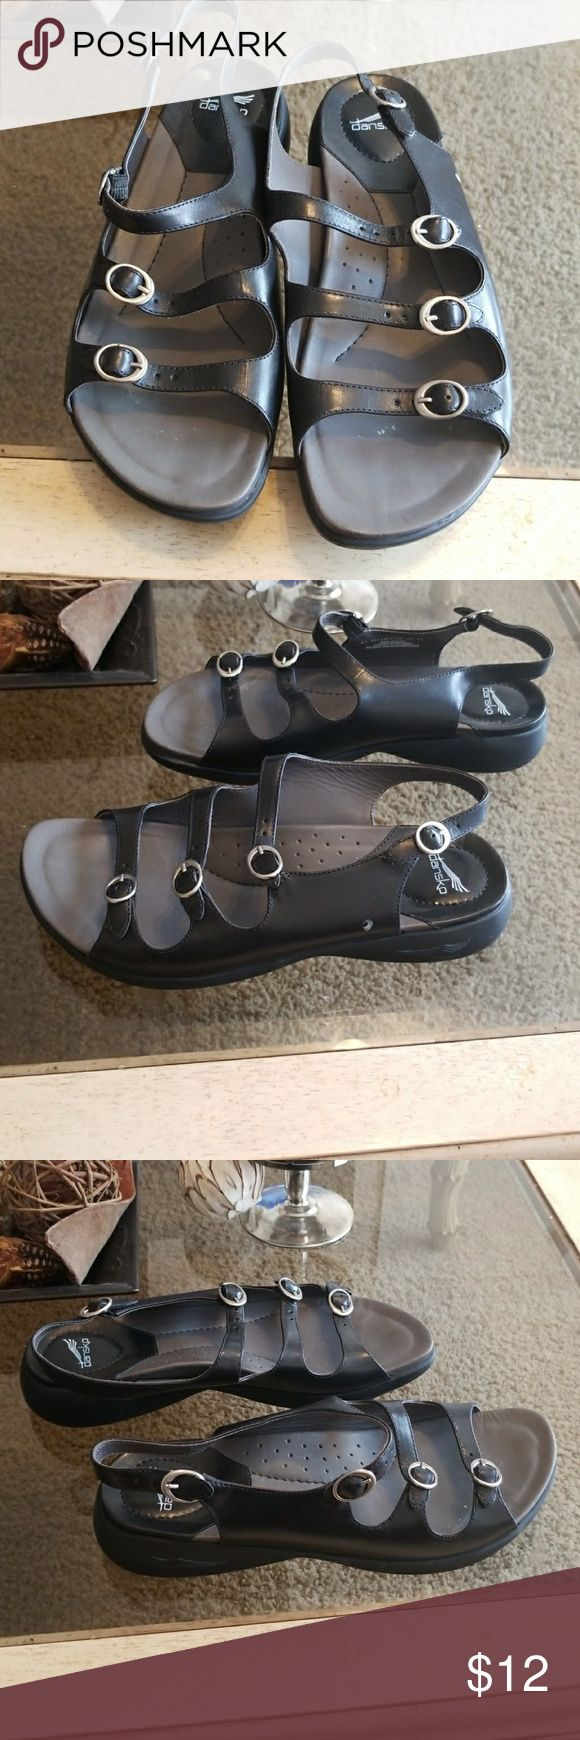 dansko Sandals dansko Sandals 👡  Black Size 10. Shoes are gently used and are in great condition!!!!  Estate Sale!!!!! Dansko Shoes Sandals